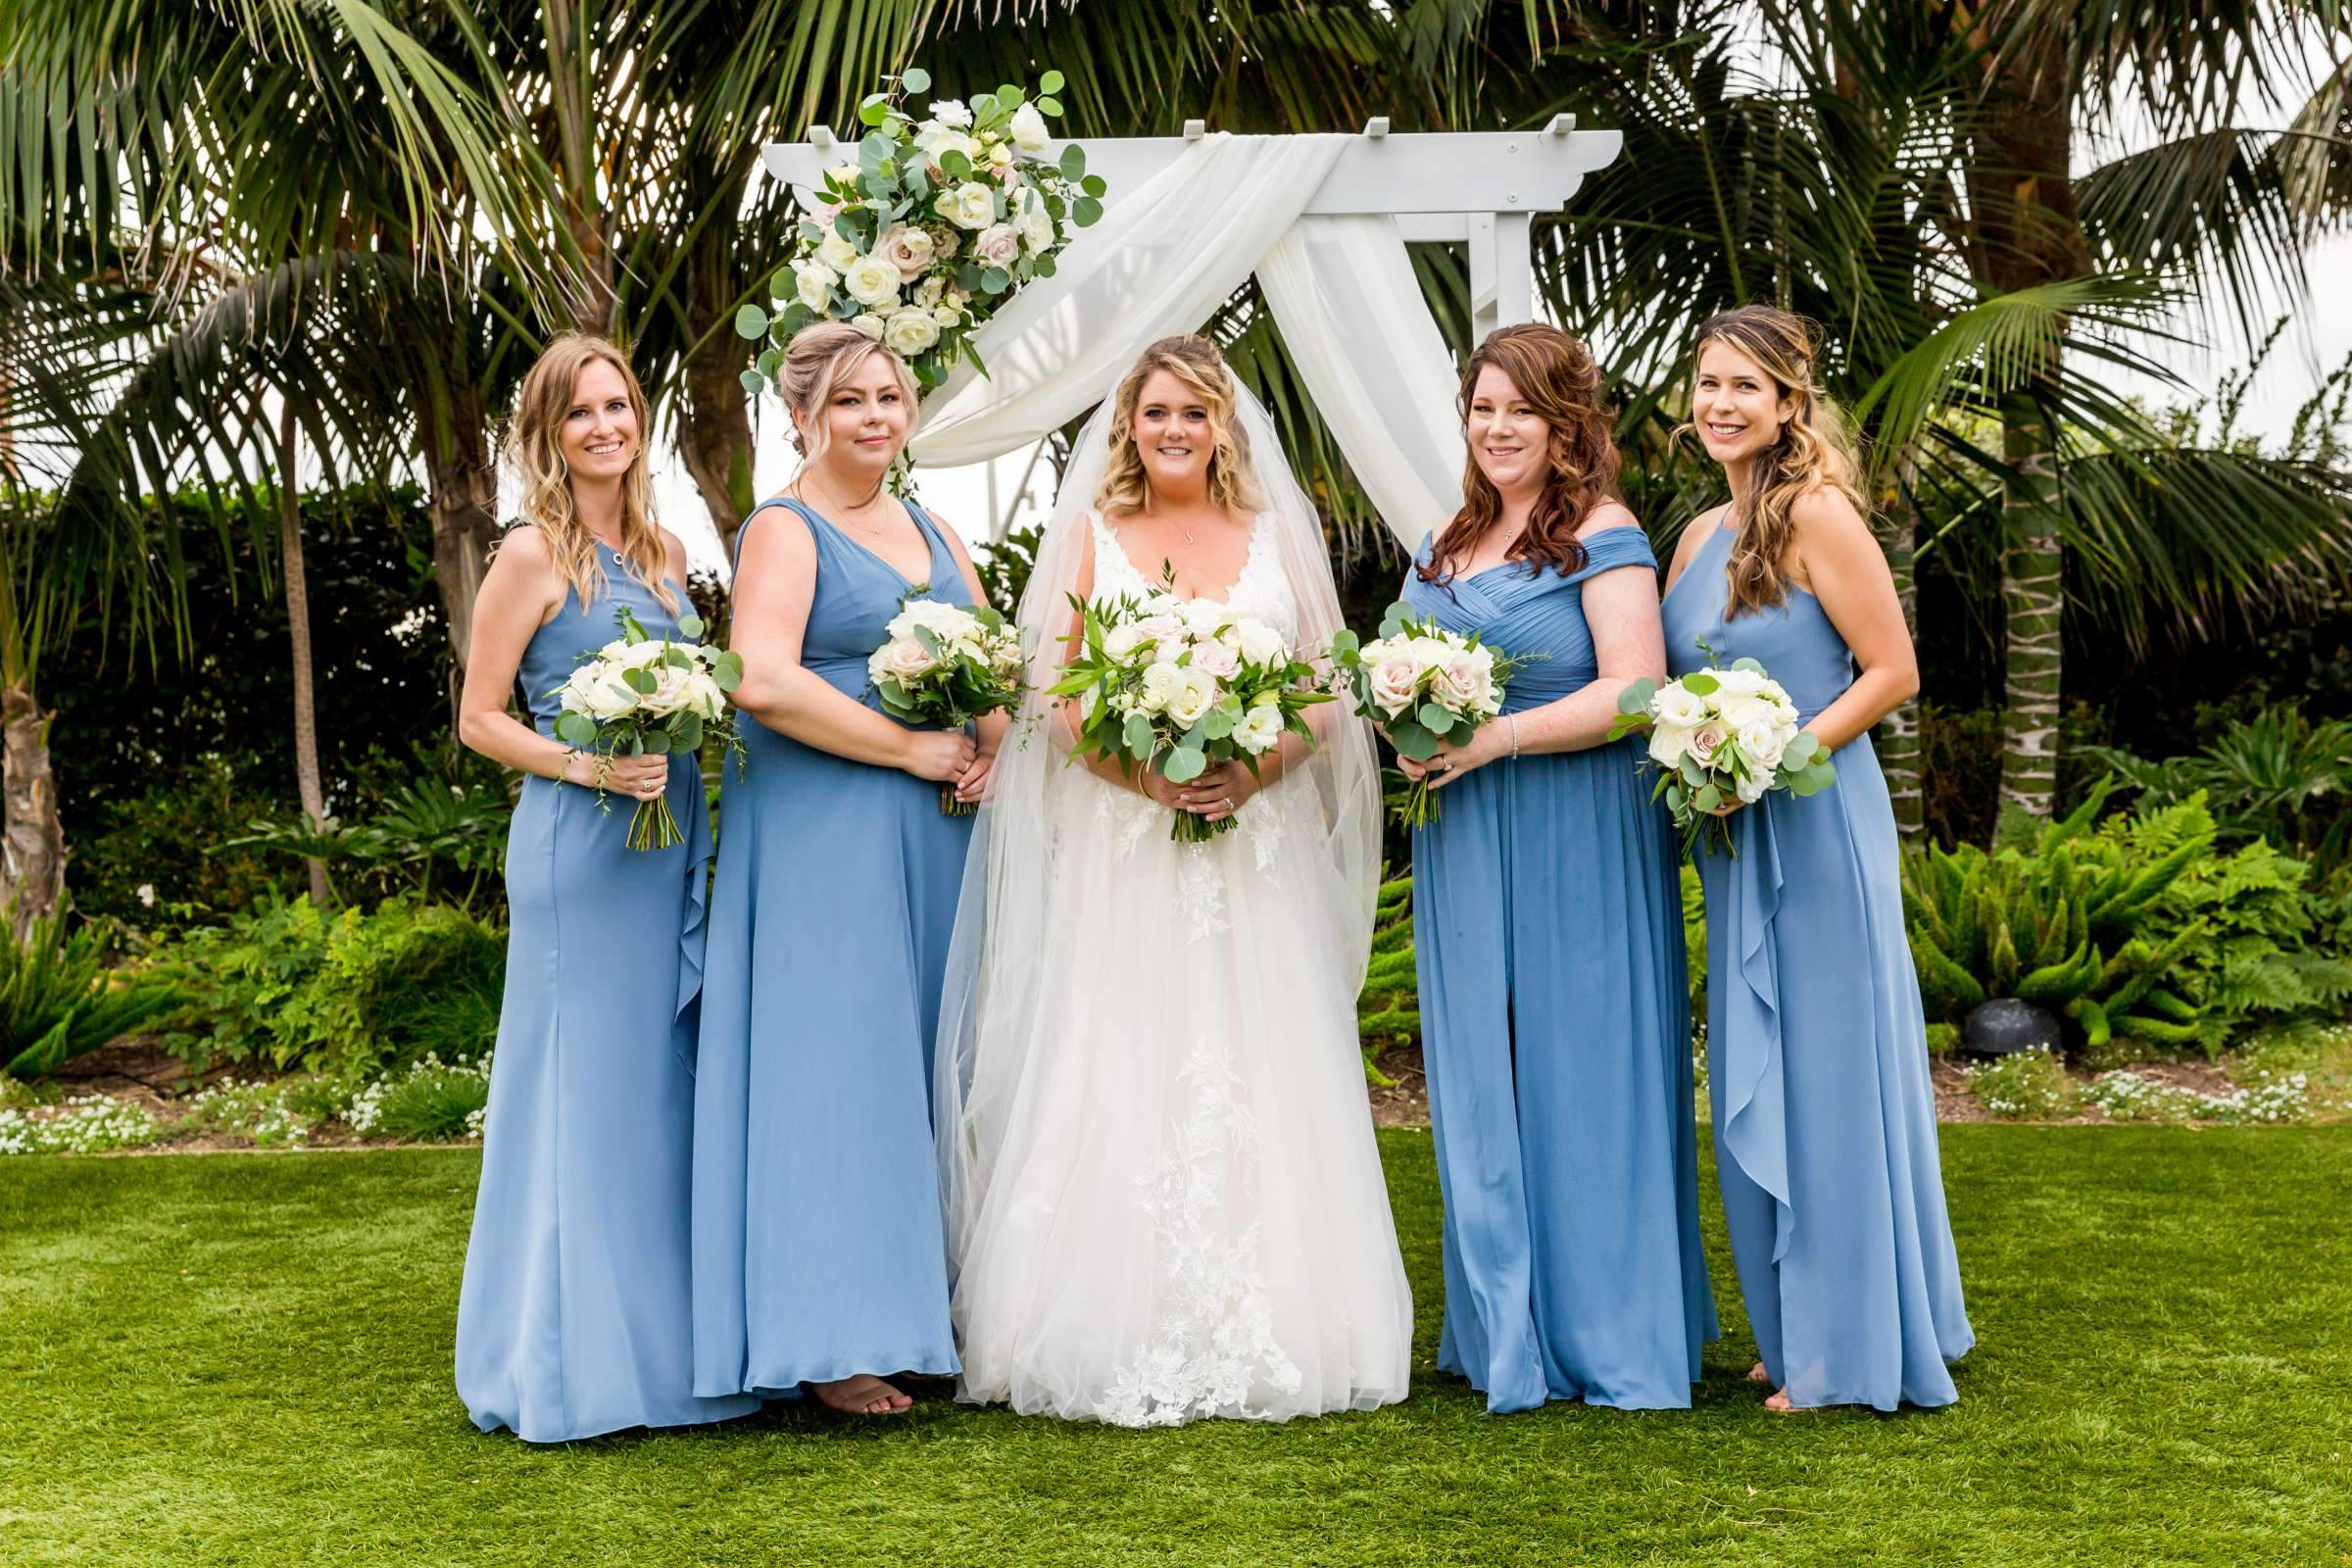 Cape Rey Carlsbad, A Hilton Resort Wedding, Michelle and Justin Wedding Photo #51 by True Photography